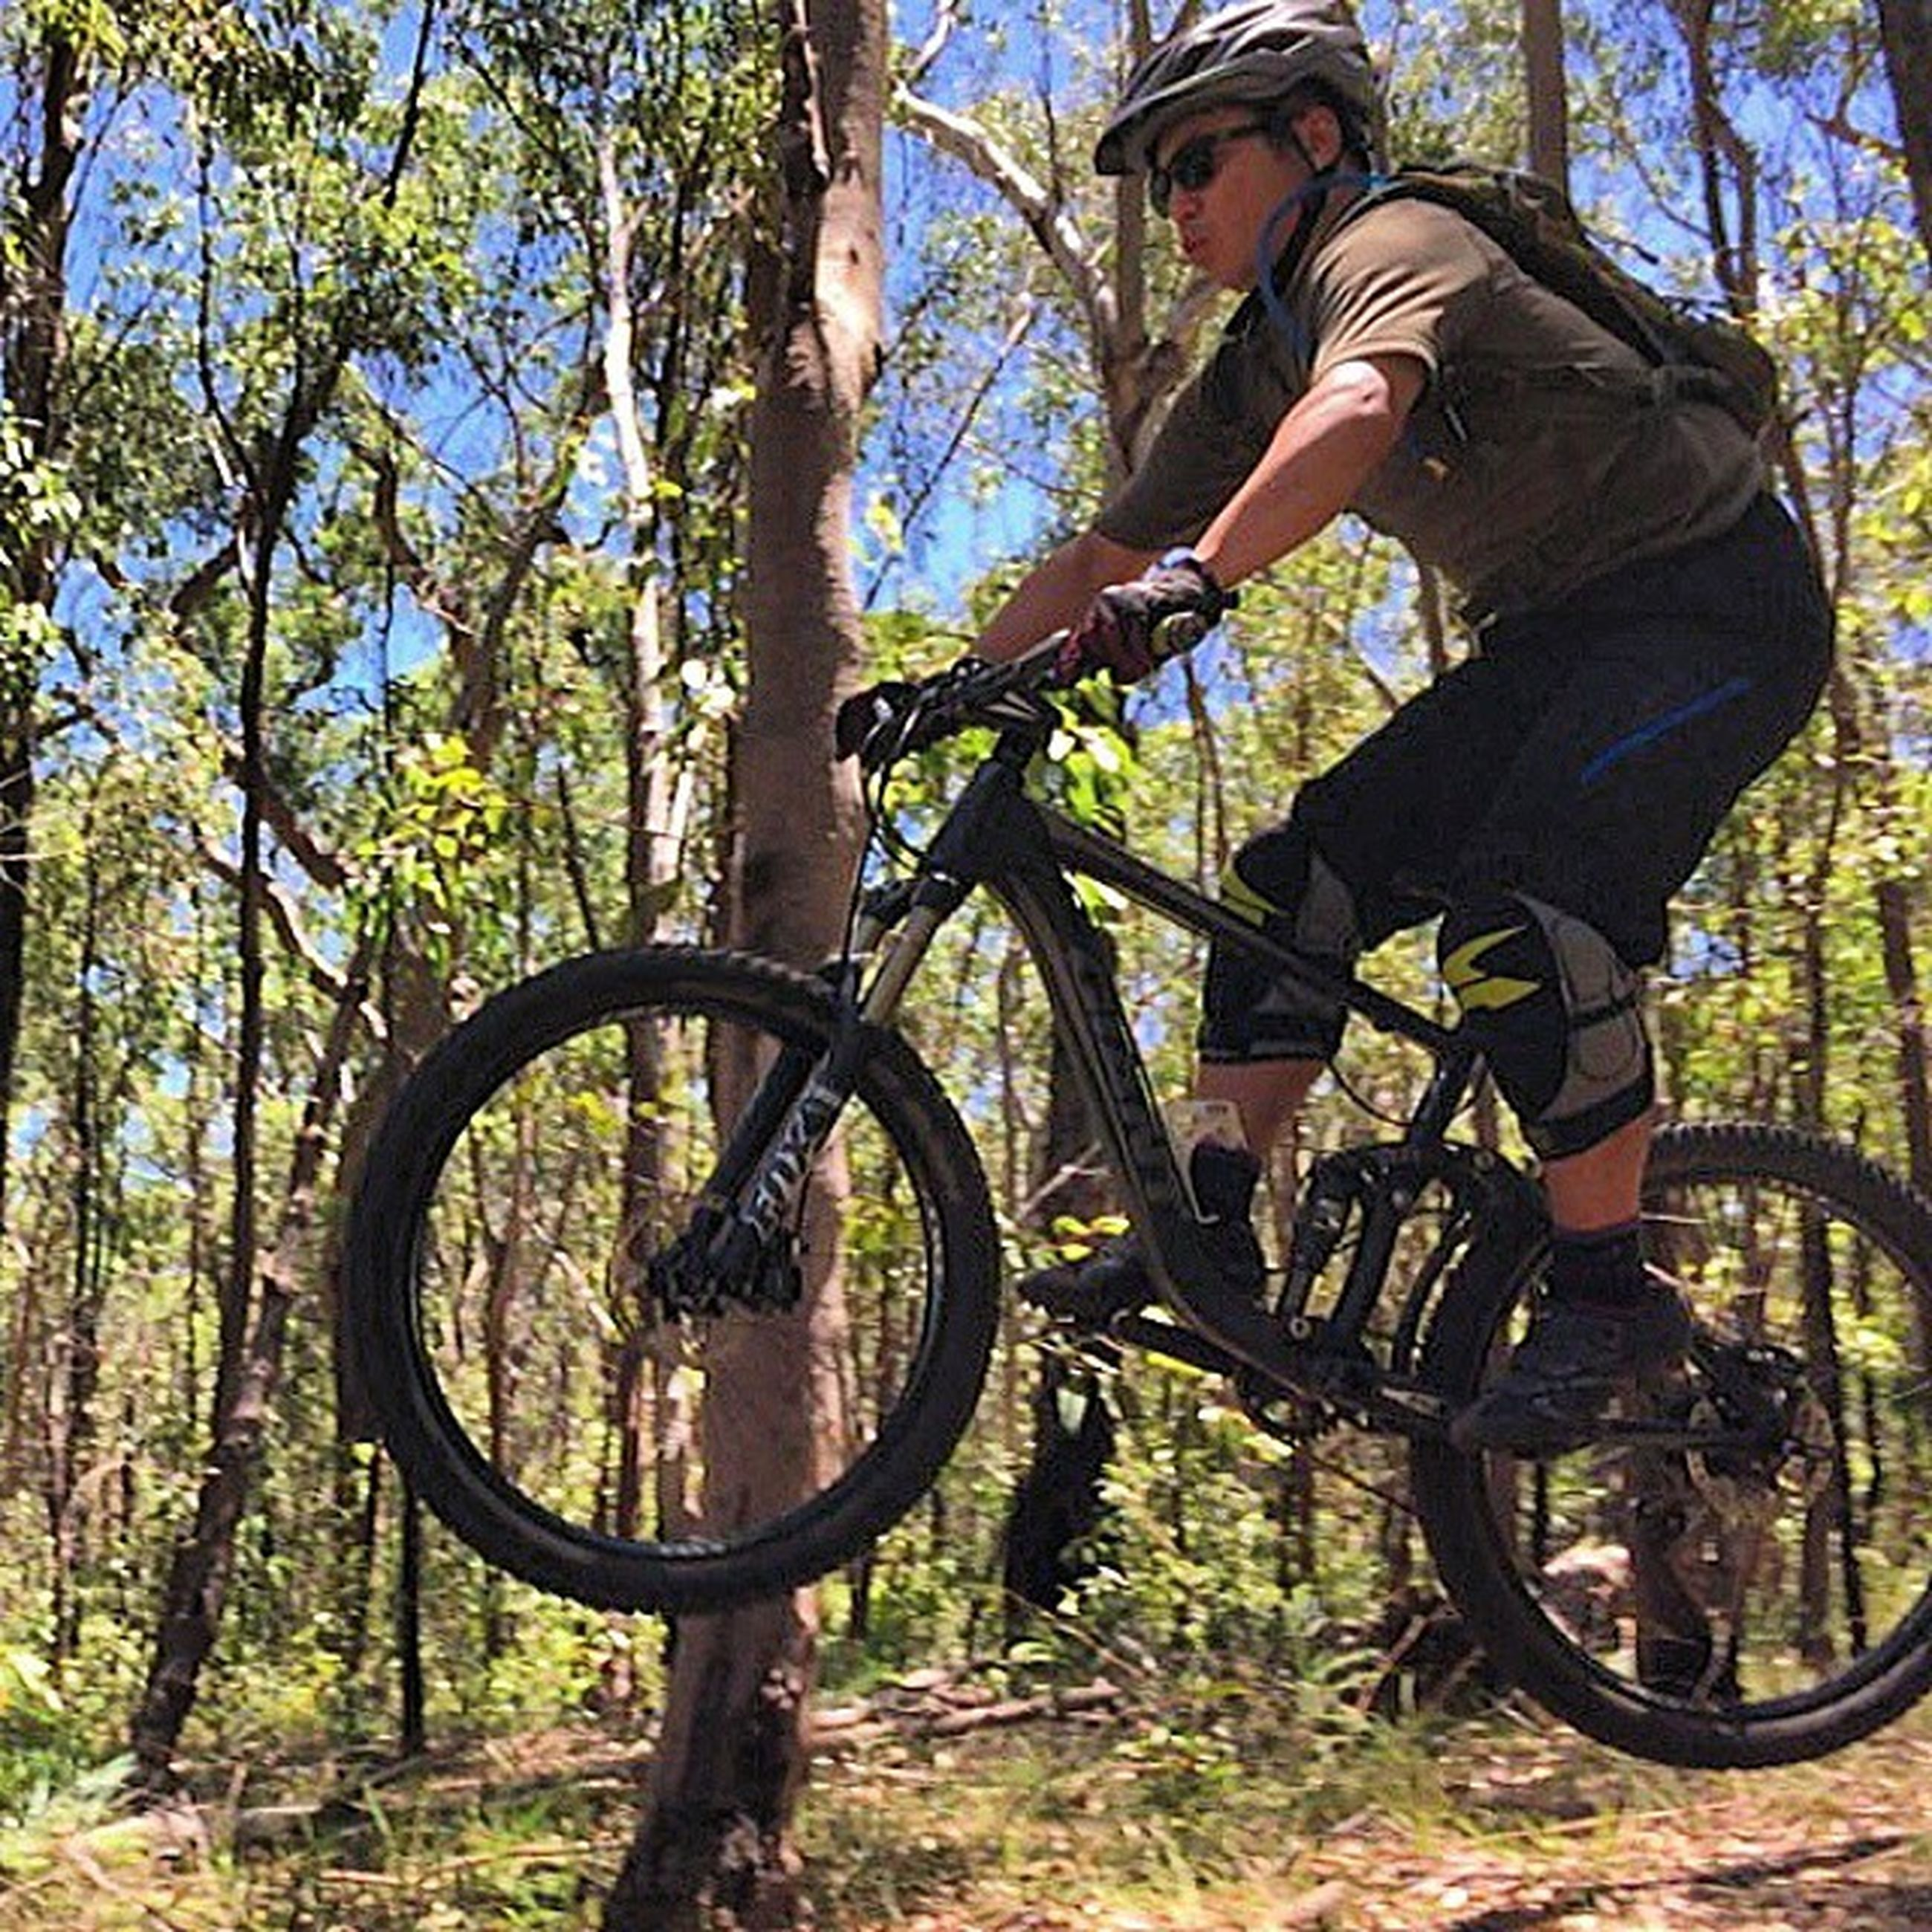 bicycle, land vehicle, transportation, tree, mode of transport, leisure activity, lifestyles, riding, low section, travel, sunlight, men, day, cycling, part of, outdoors, nature